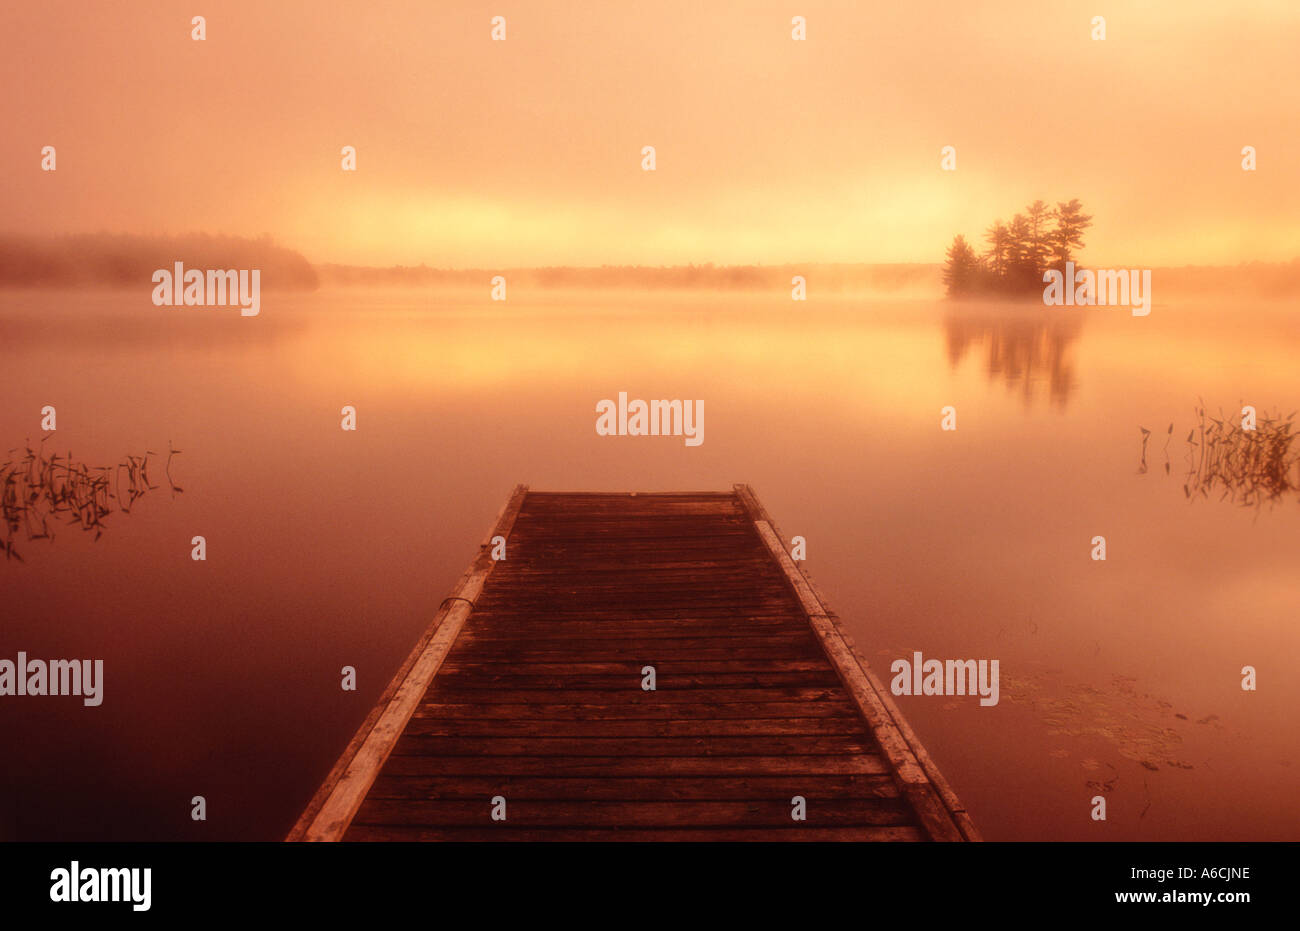 Canada Ontario Mackay Lake sunrise at dawn with wooden pier and island in distance - Stock Image